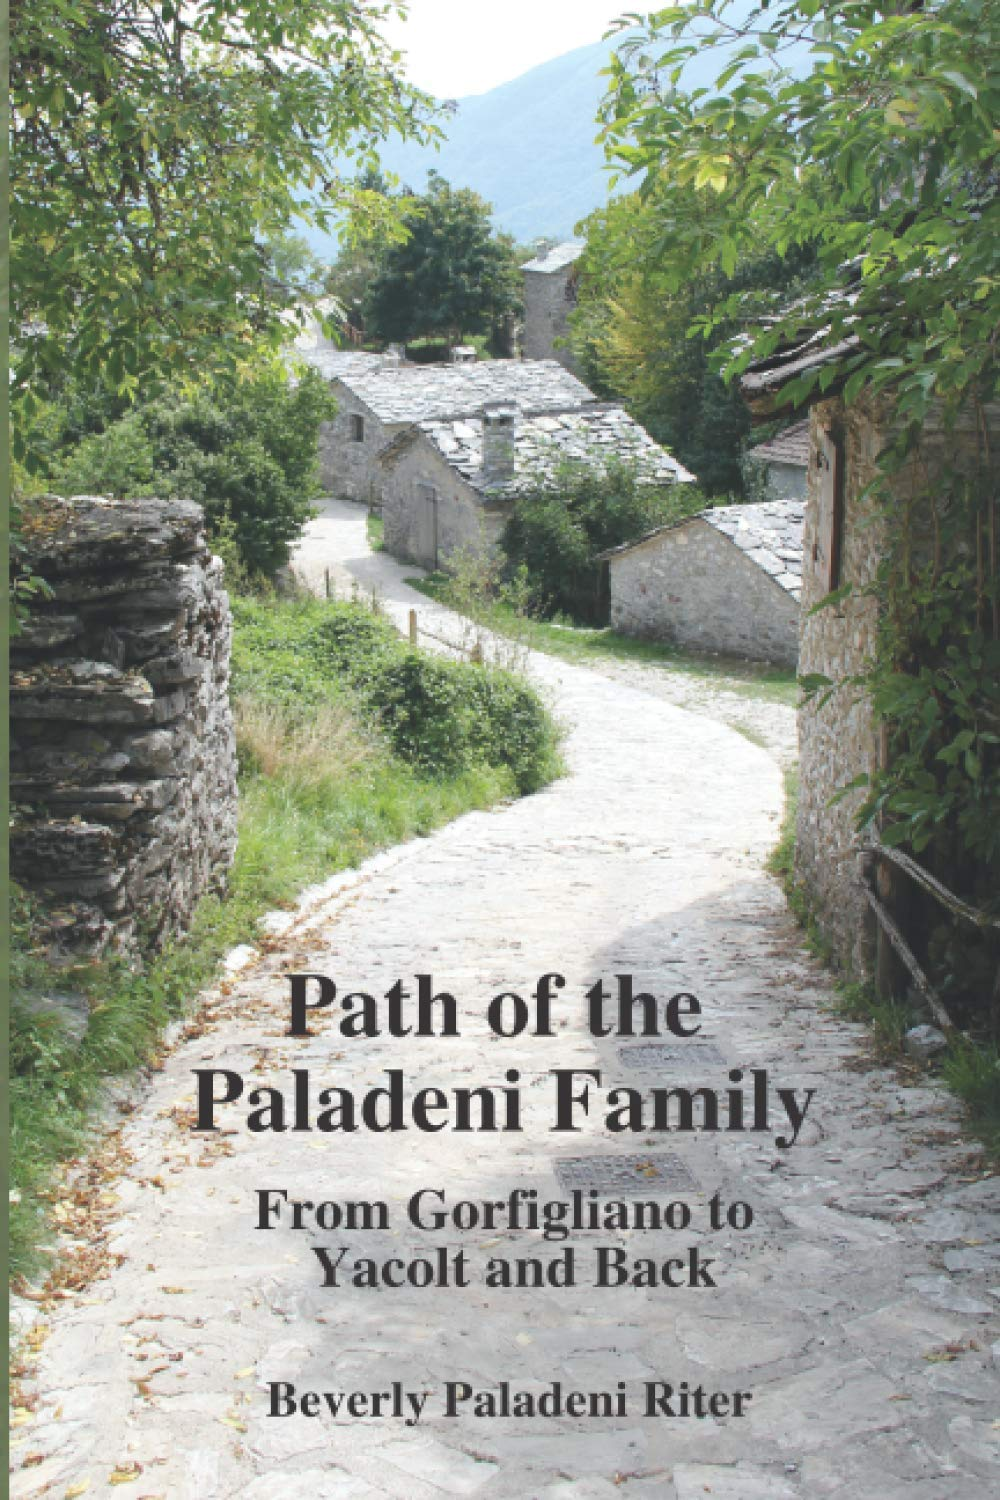 book cover for the Path of the Paladeni Family